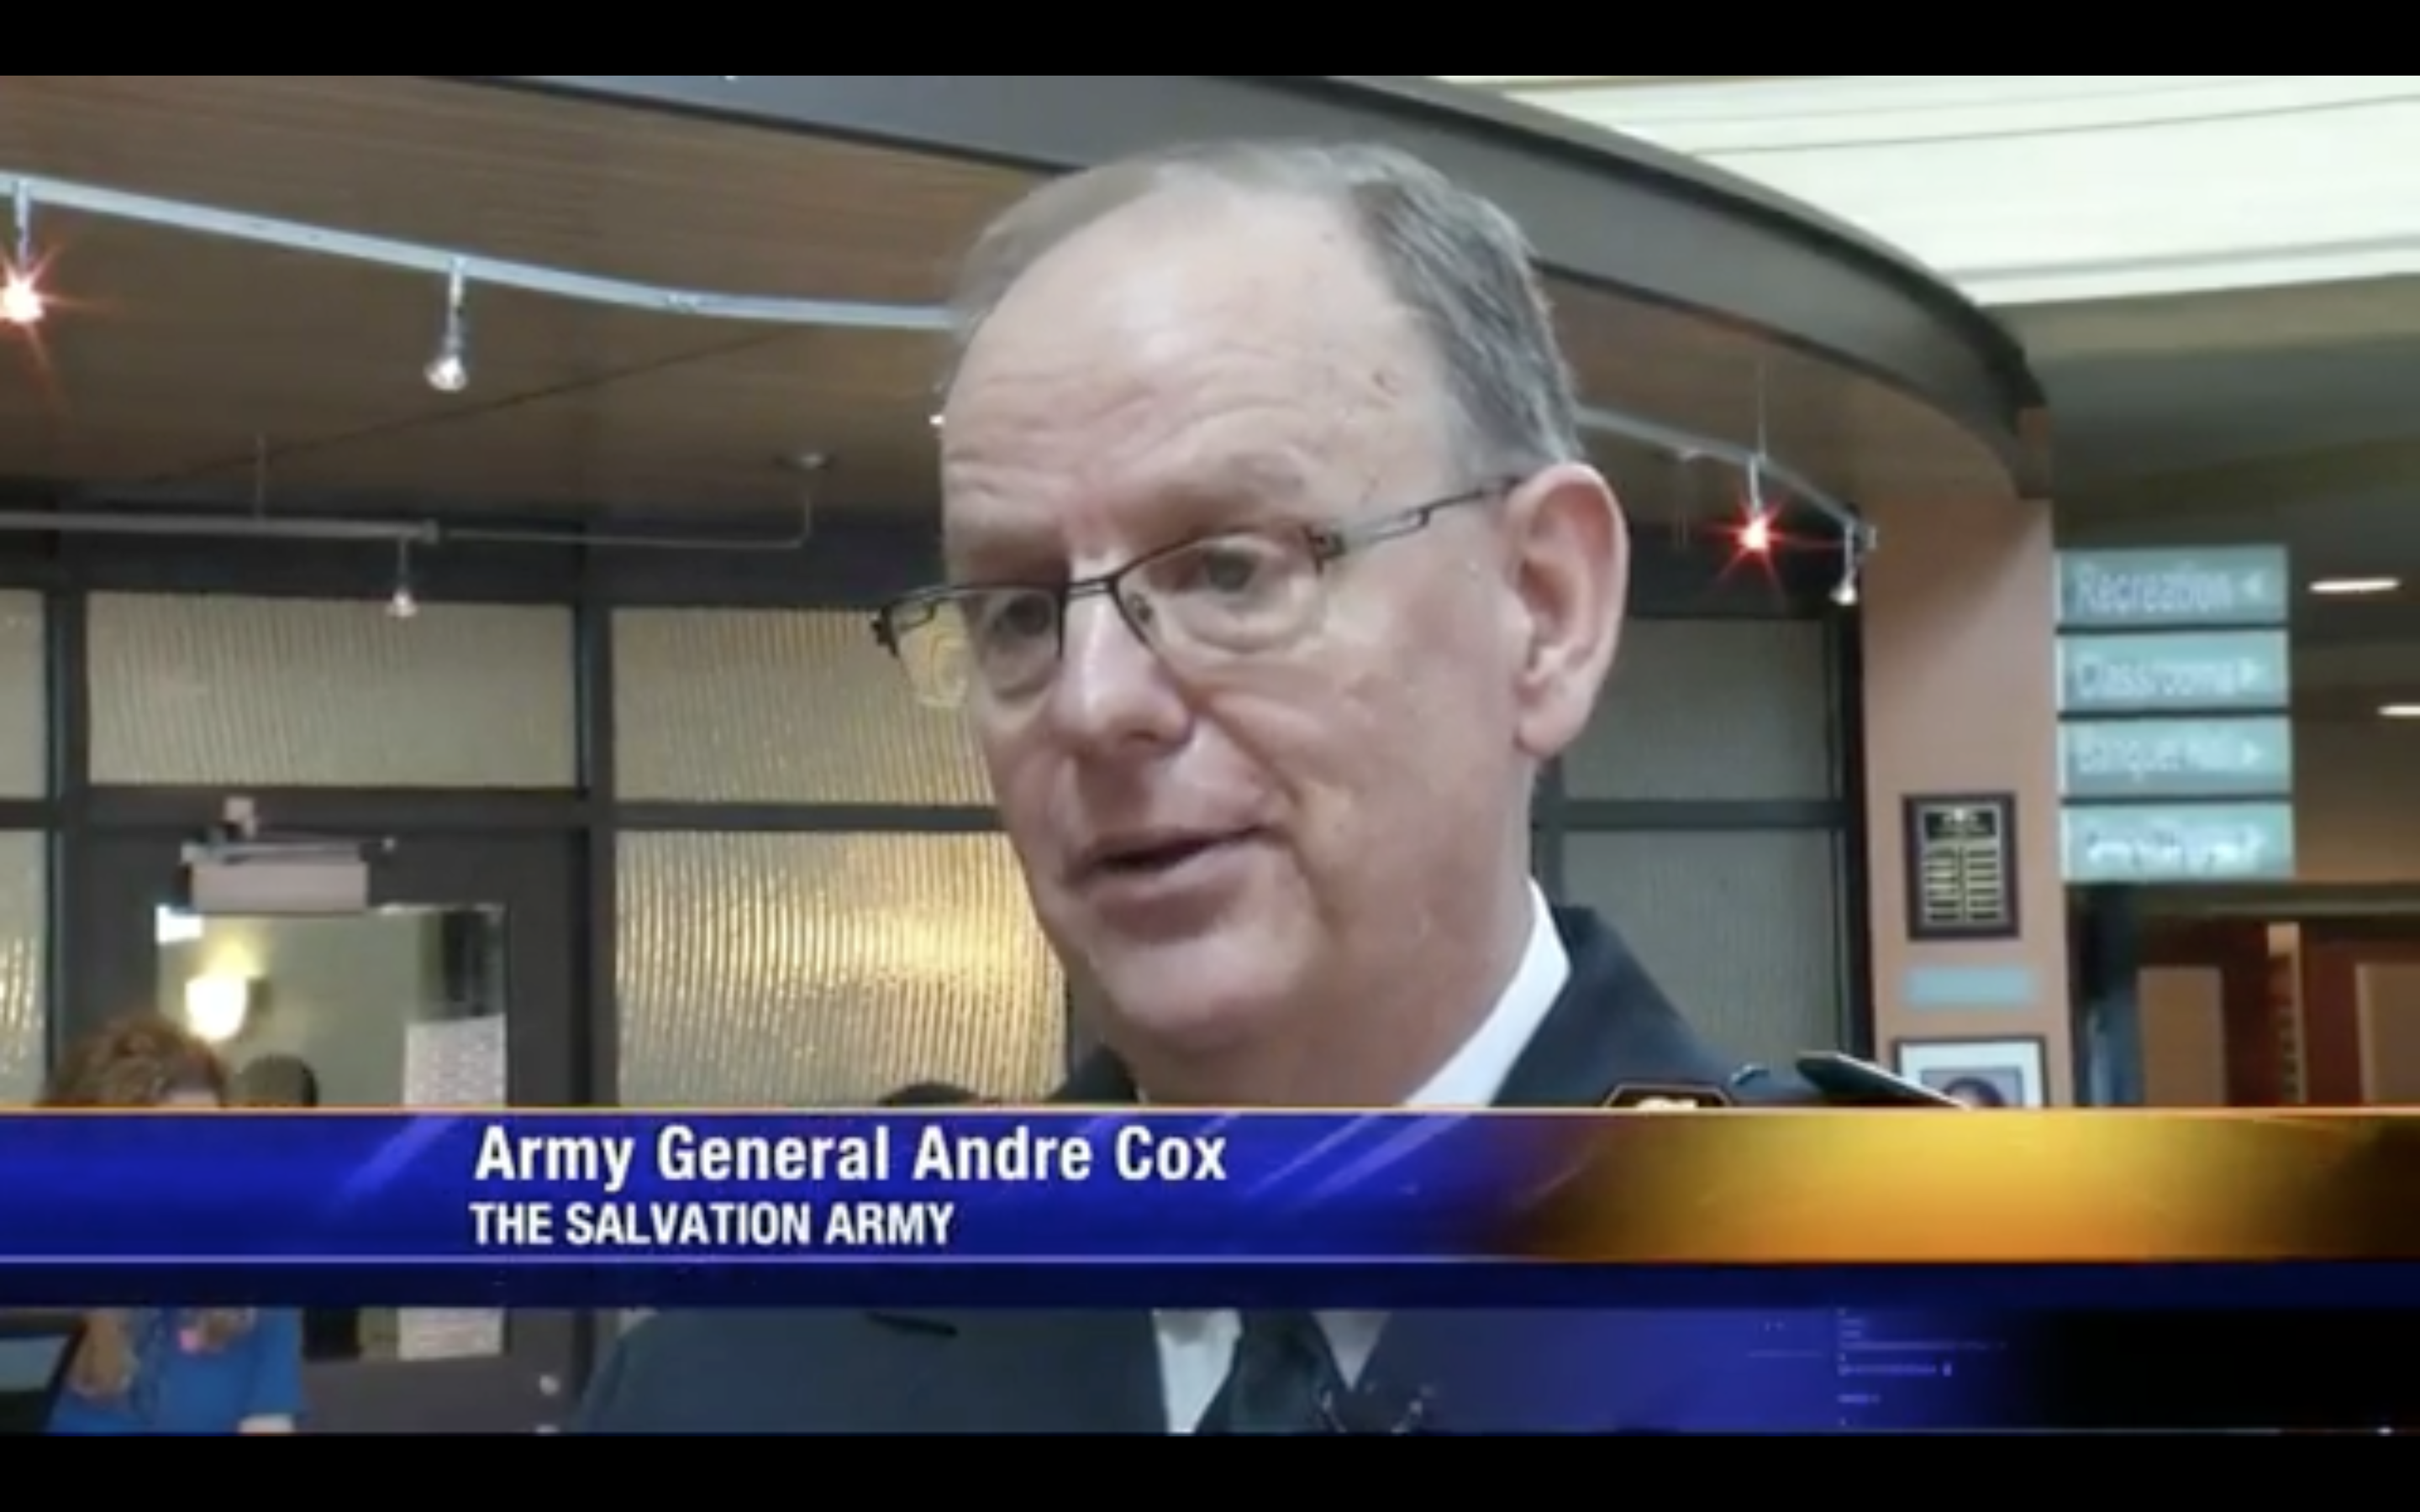 General Cox takes part in WJBF news broadcast